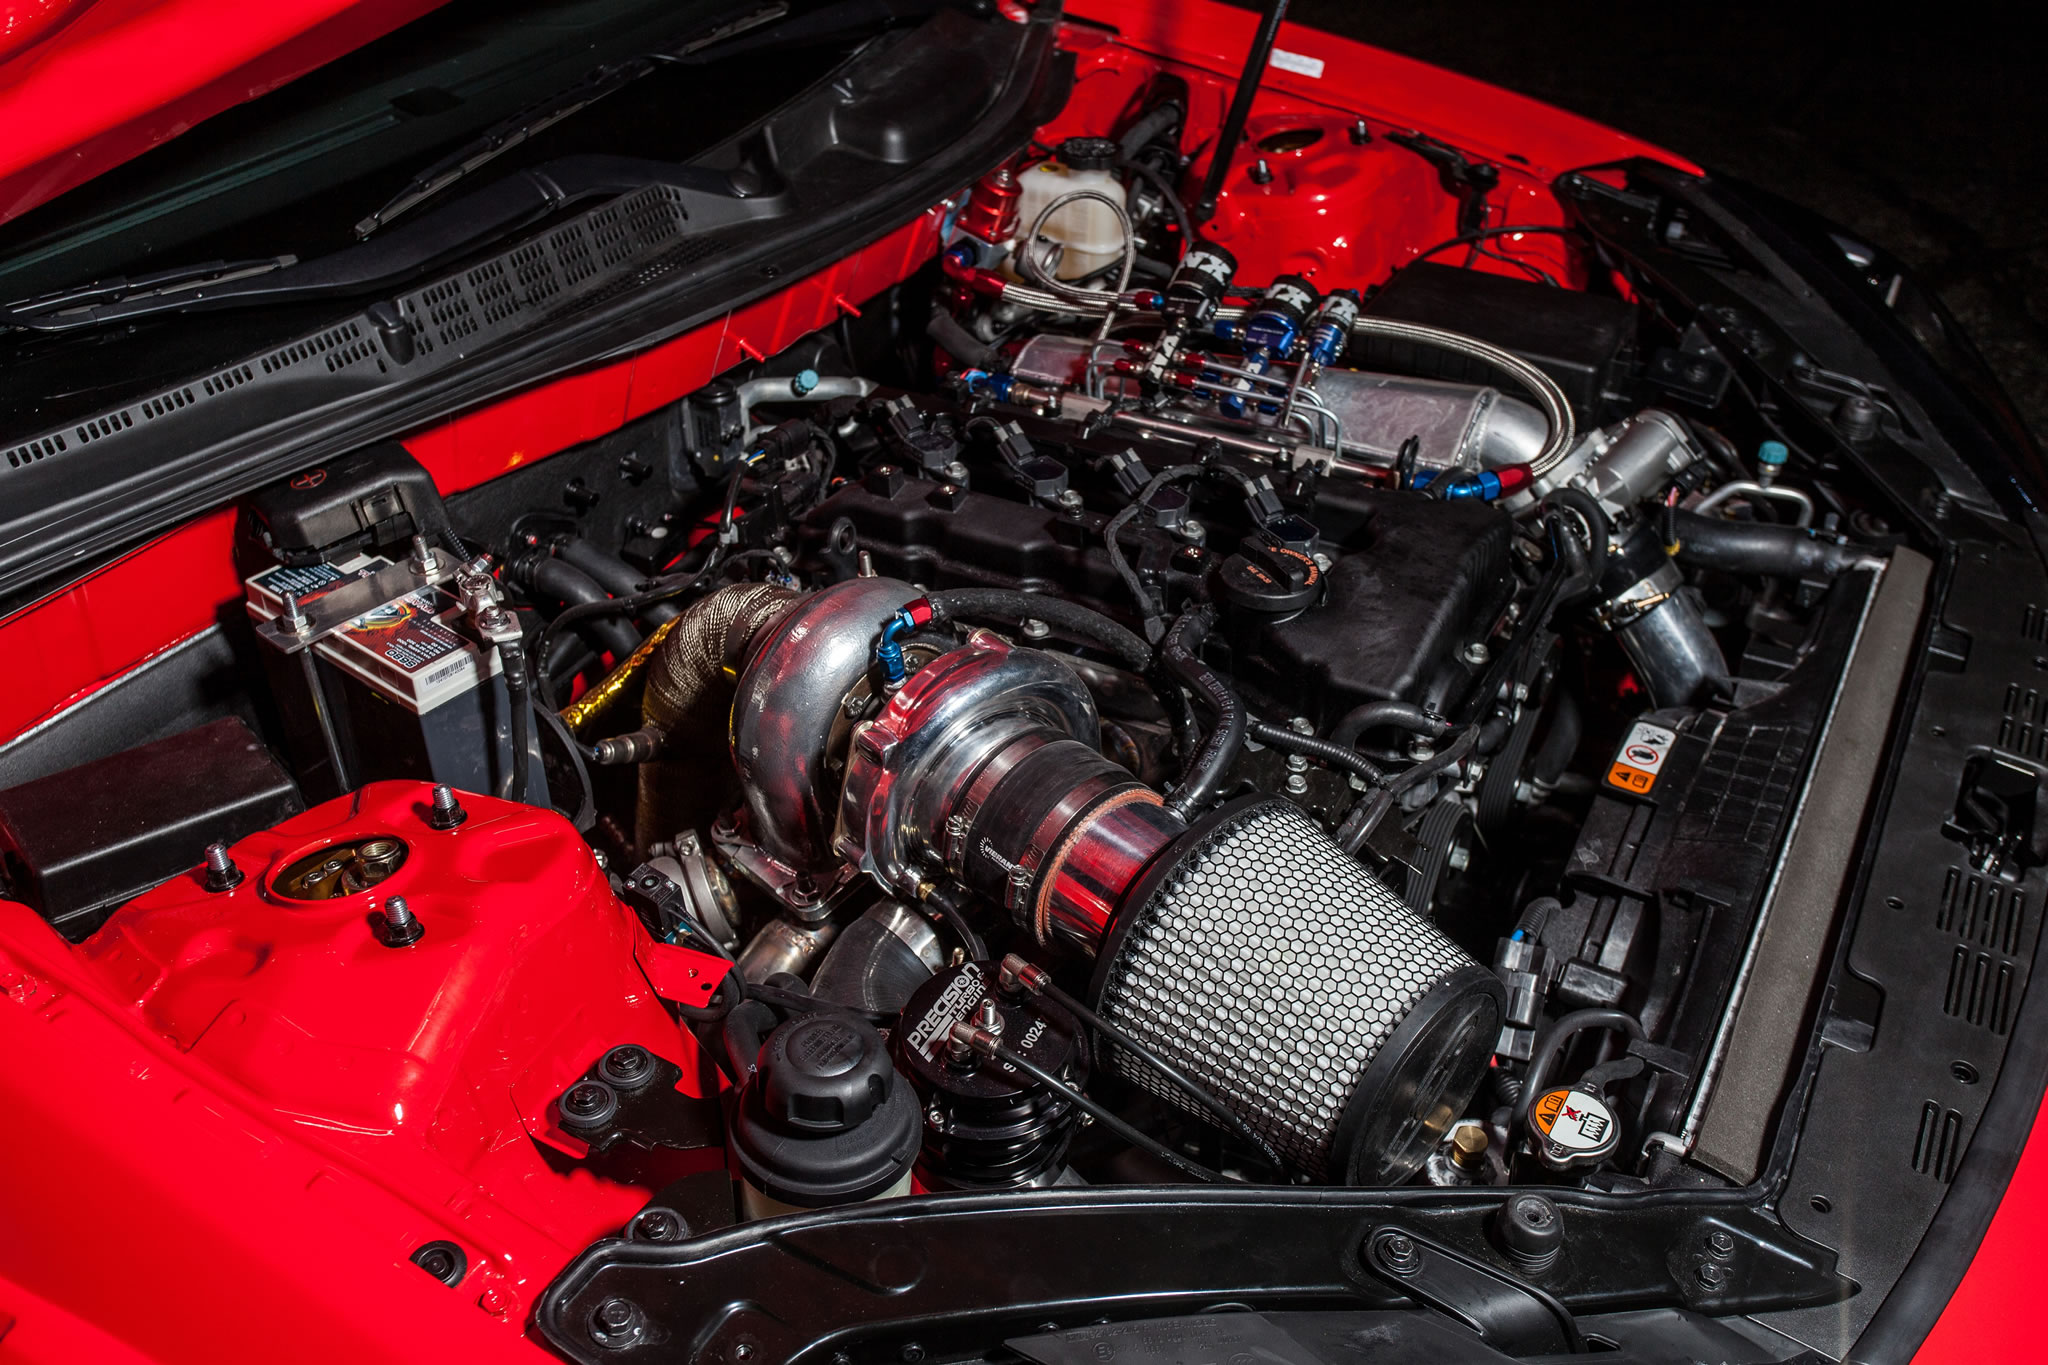 2014 hyundai genesis coupe by blood type racing engine photo 1 000 horsepower size 2048 x. Black Bedroom Furniture Sets. Home Design Ideas